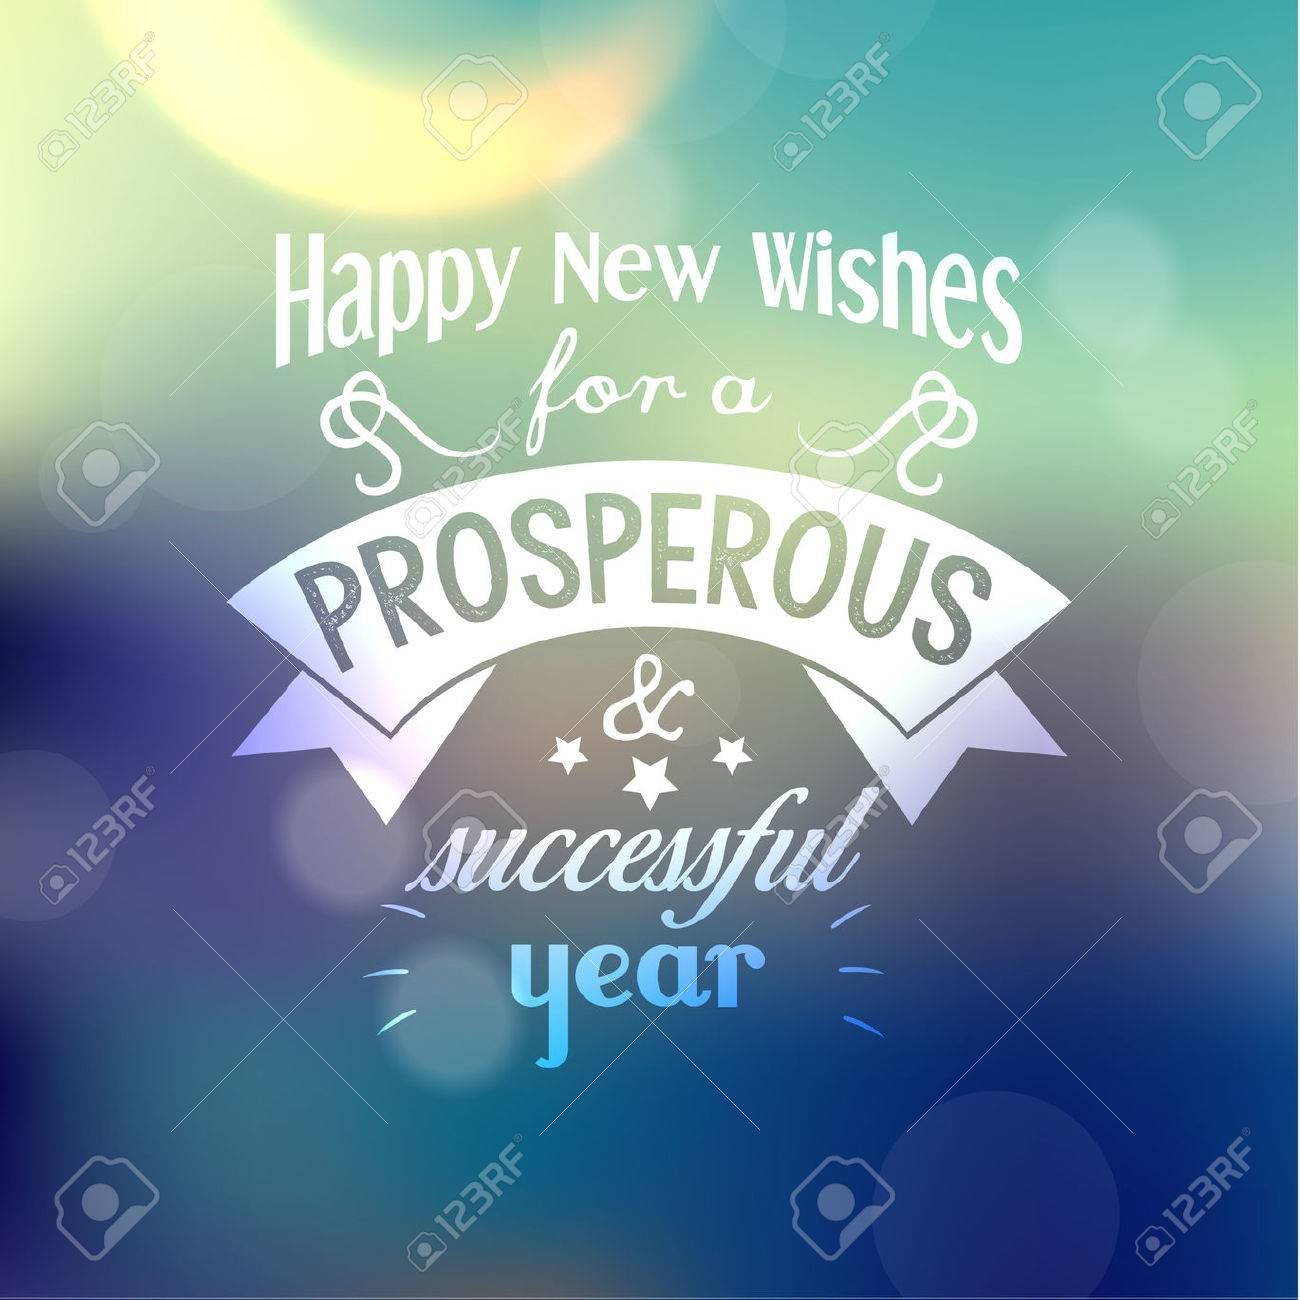 Happy new year greetings quote vector design royalty free cliparts happy new year greetings quote vector design stock vector 33328097 m4hsunfo